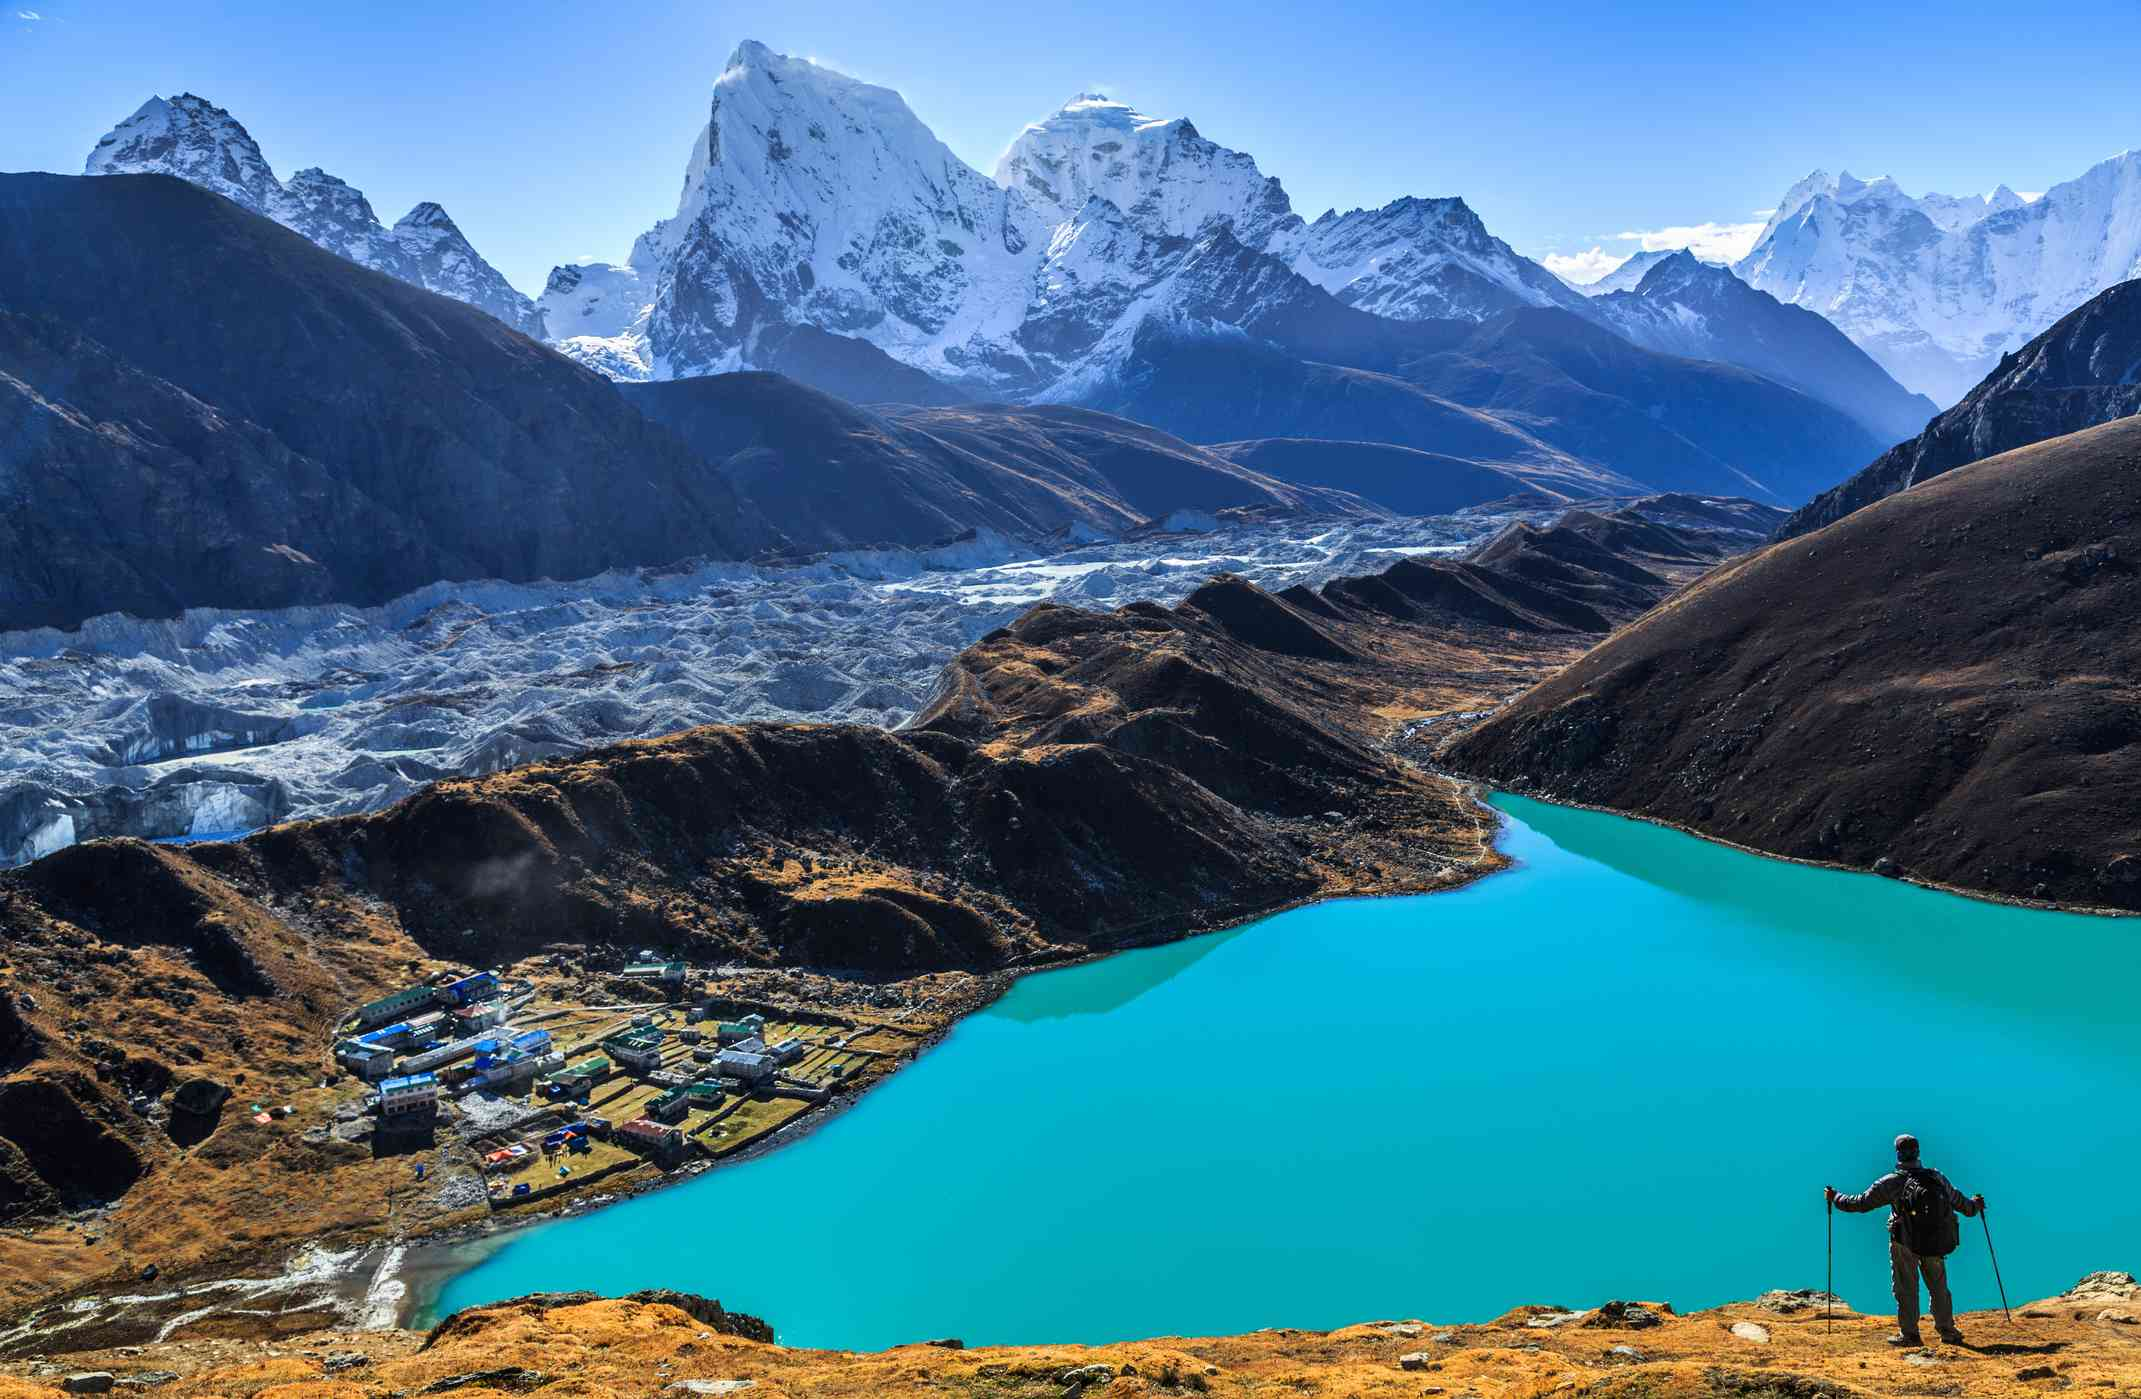 bright turquoise glacial lake with huge snow-covered mountains in backgound and a hiker in foreground